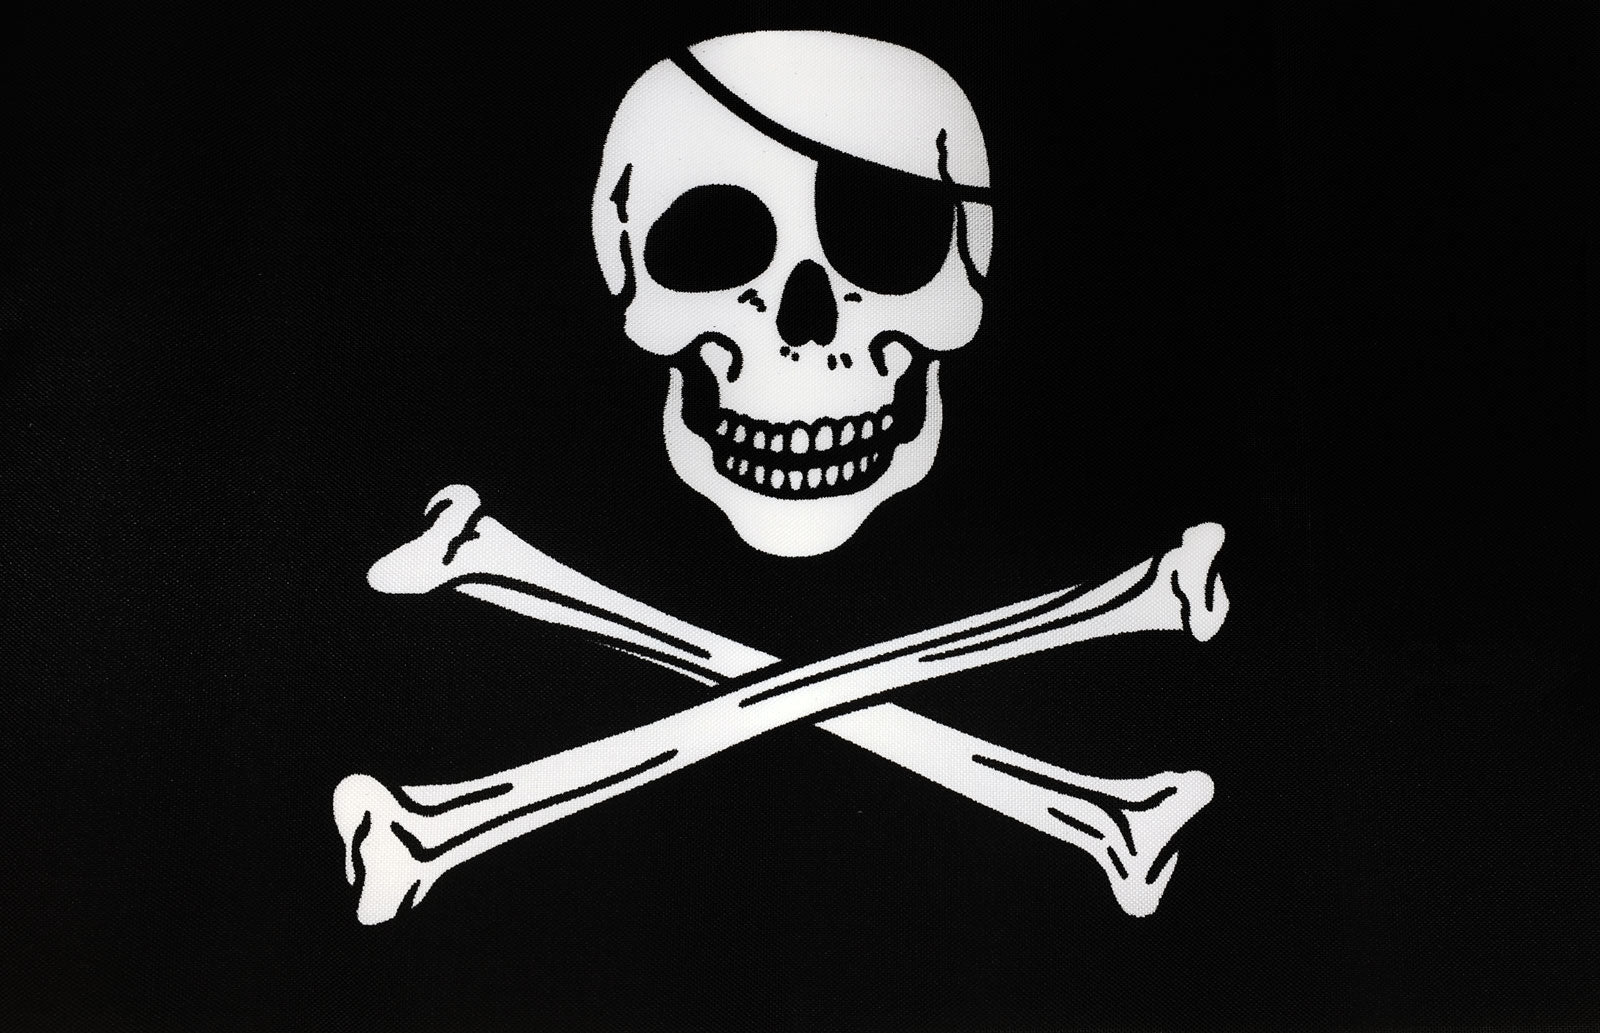 SKULL AND PIRATE FLAGS Size 5x3 Feet FISH PIRATE FLAG